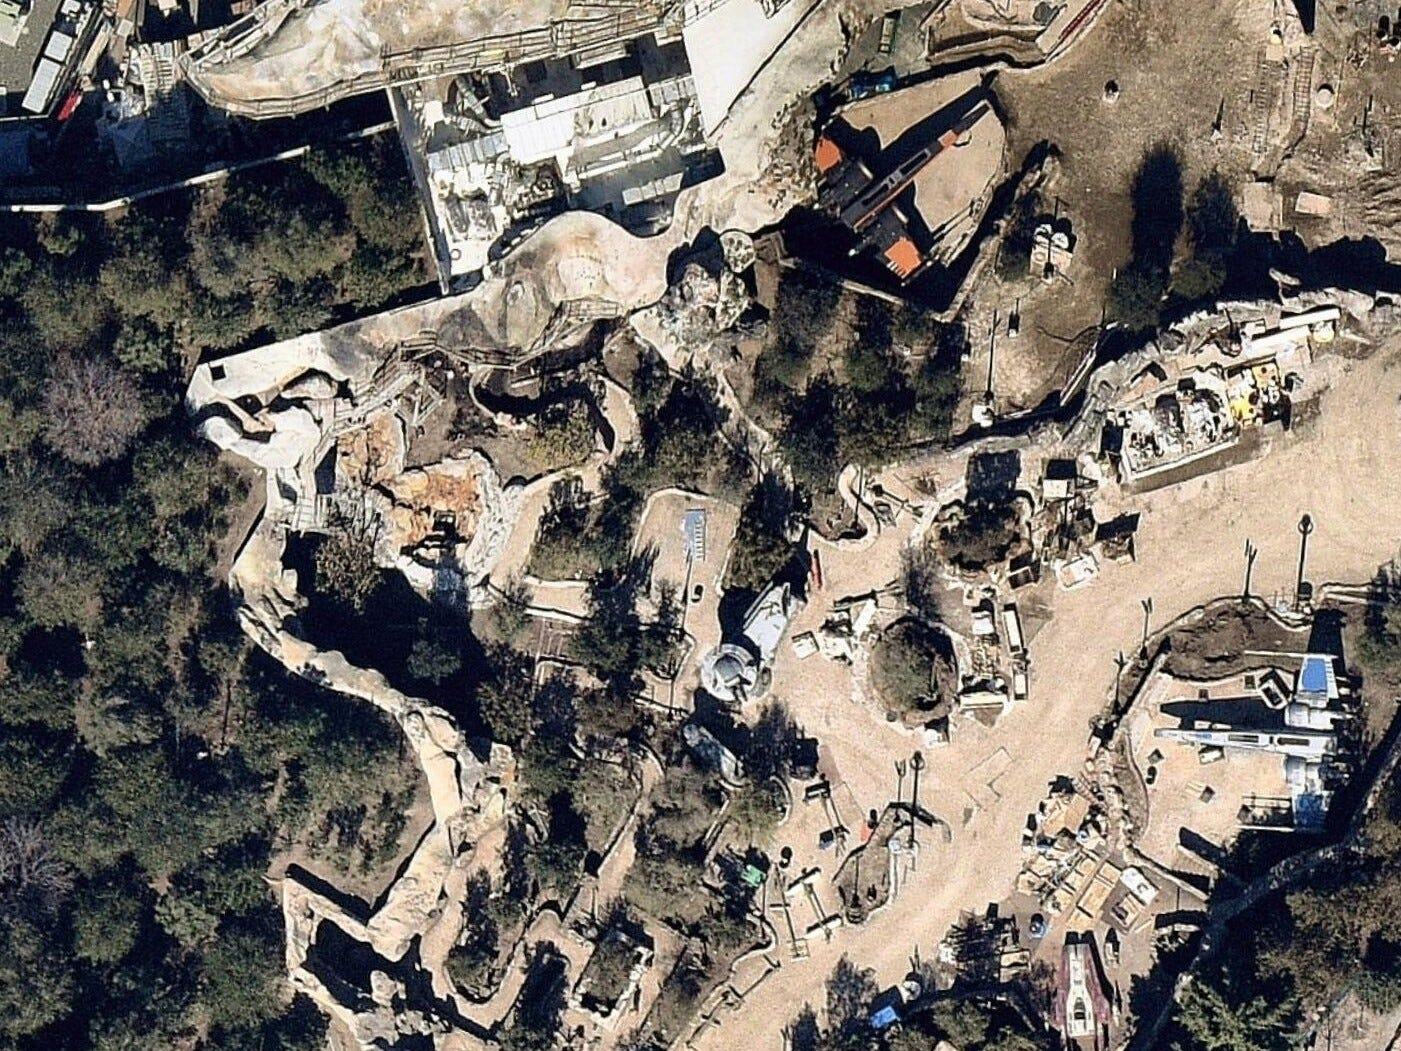 Note the sleek black X-Wing at the top, as well as the  blue-and-white X-Wing at the lower right parked near an A-Wing, iconic Star Wars fighters as seen in a February satellite image of Star Wars: Galaxy's Edge at Disneyland. A laser turret can be seen near the center.  The queue to Star Wars: Rise of the Resistance will thread through the caves and paths here. The land opens May 31, though Rise of the Resistance won't be ready until later this year.